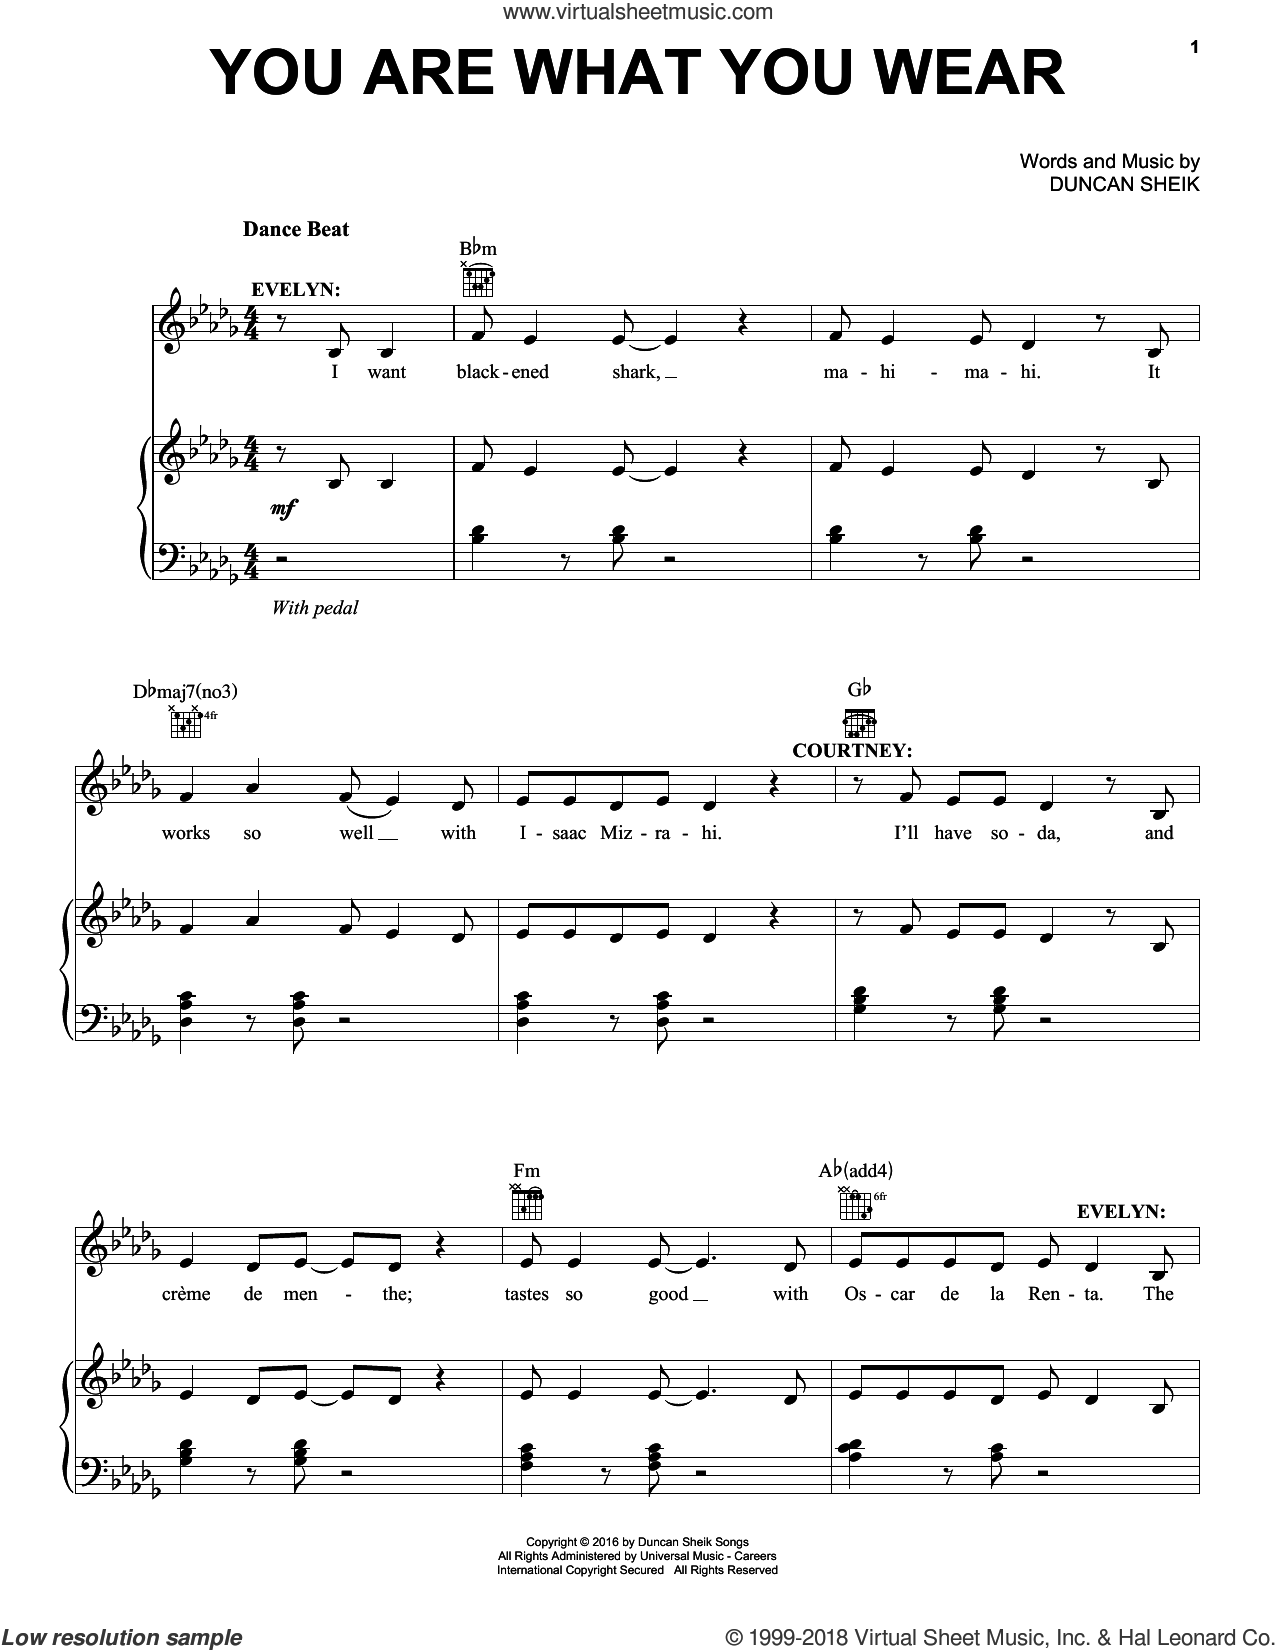 You Are What You Wear sheet music for voice, piano or guitar by Duncan Sheik. Score Image Preview.